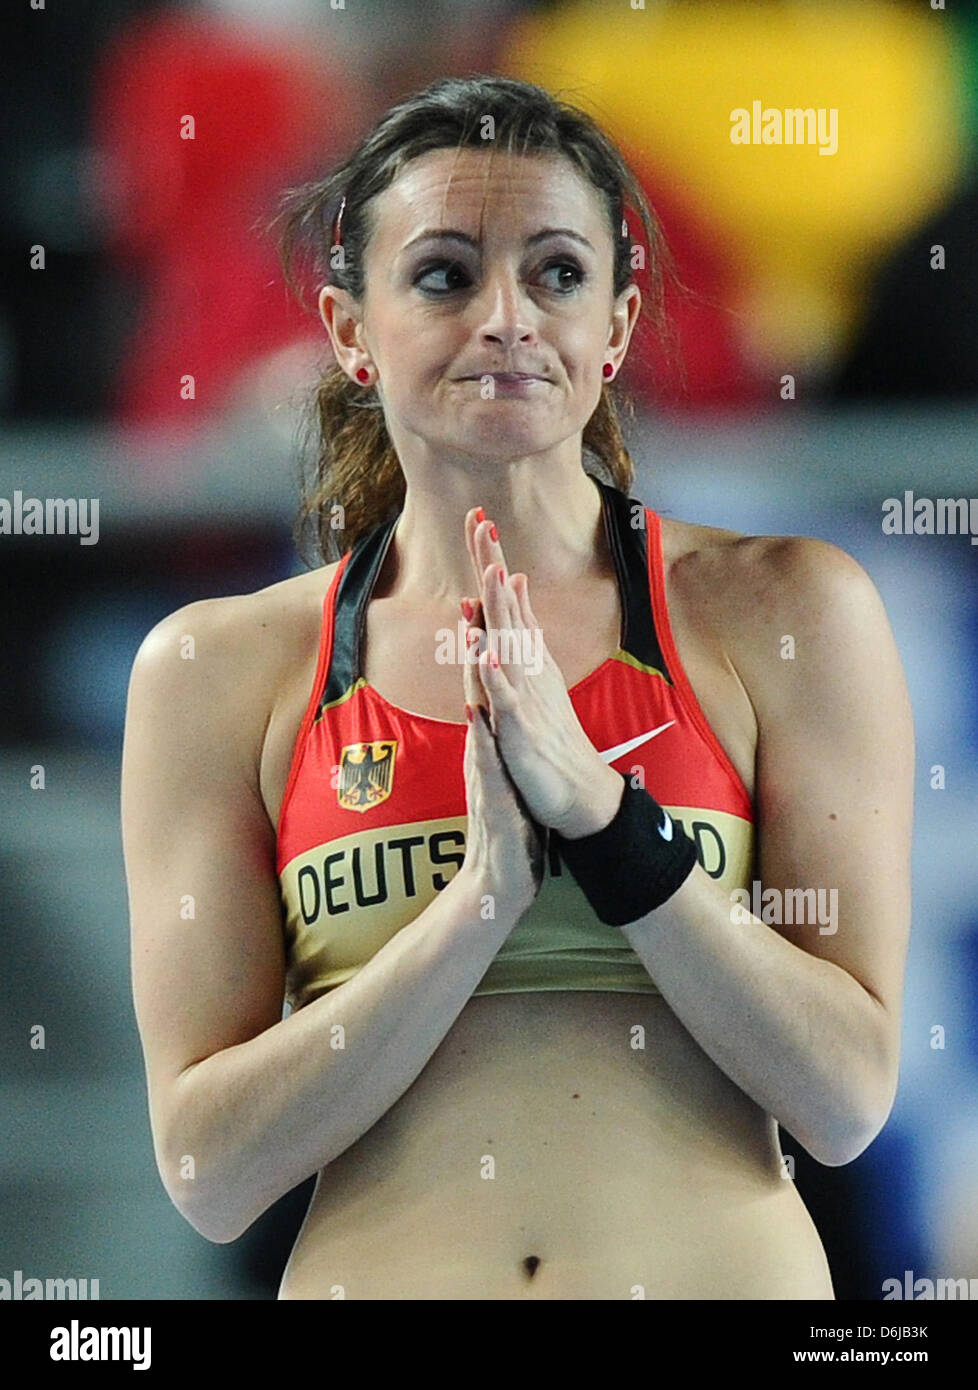 Germany's Kristina Gadschiew reacts during the Women's pole vault final at the IAAF World Indoor Championships - Stock Image